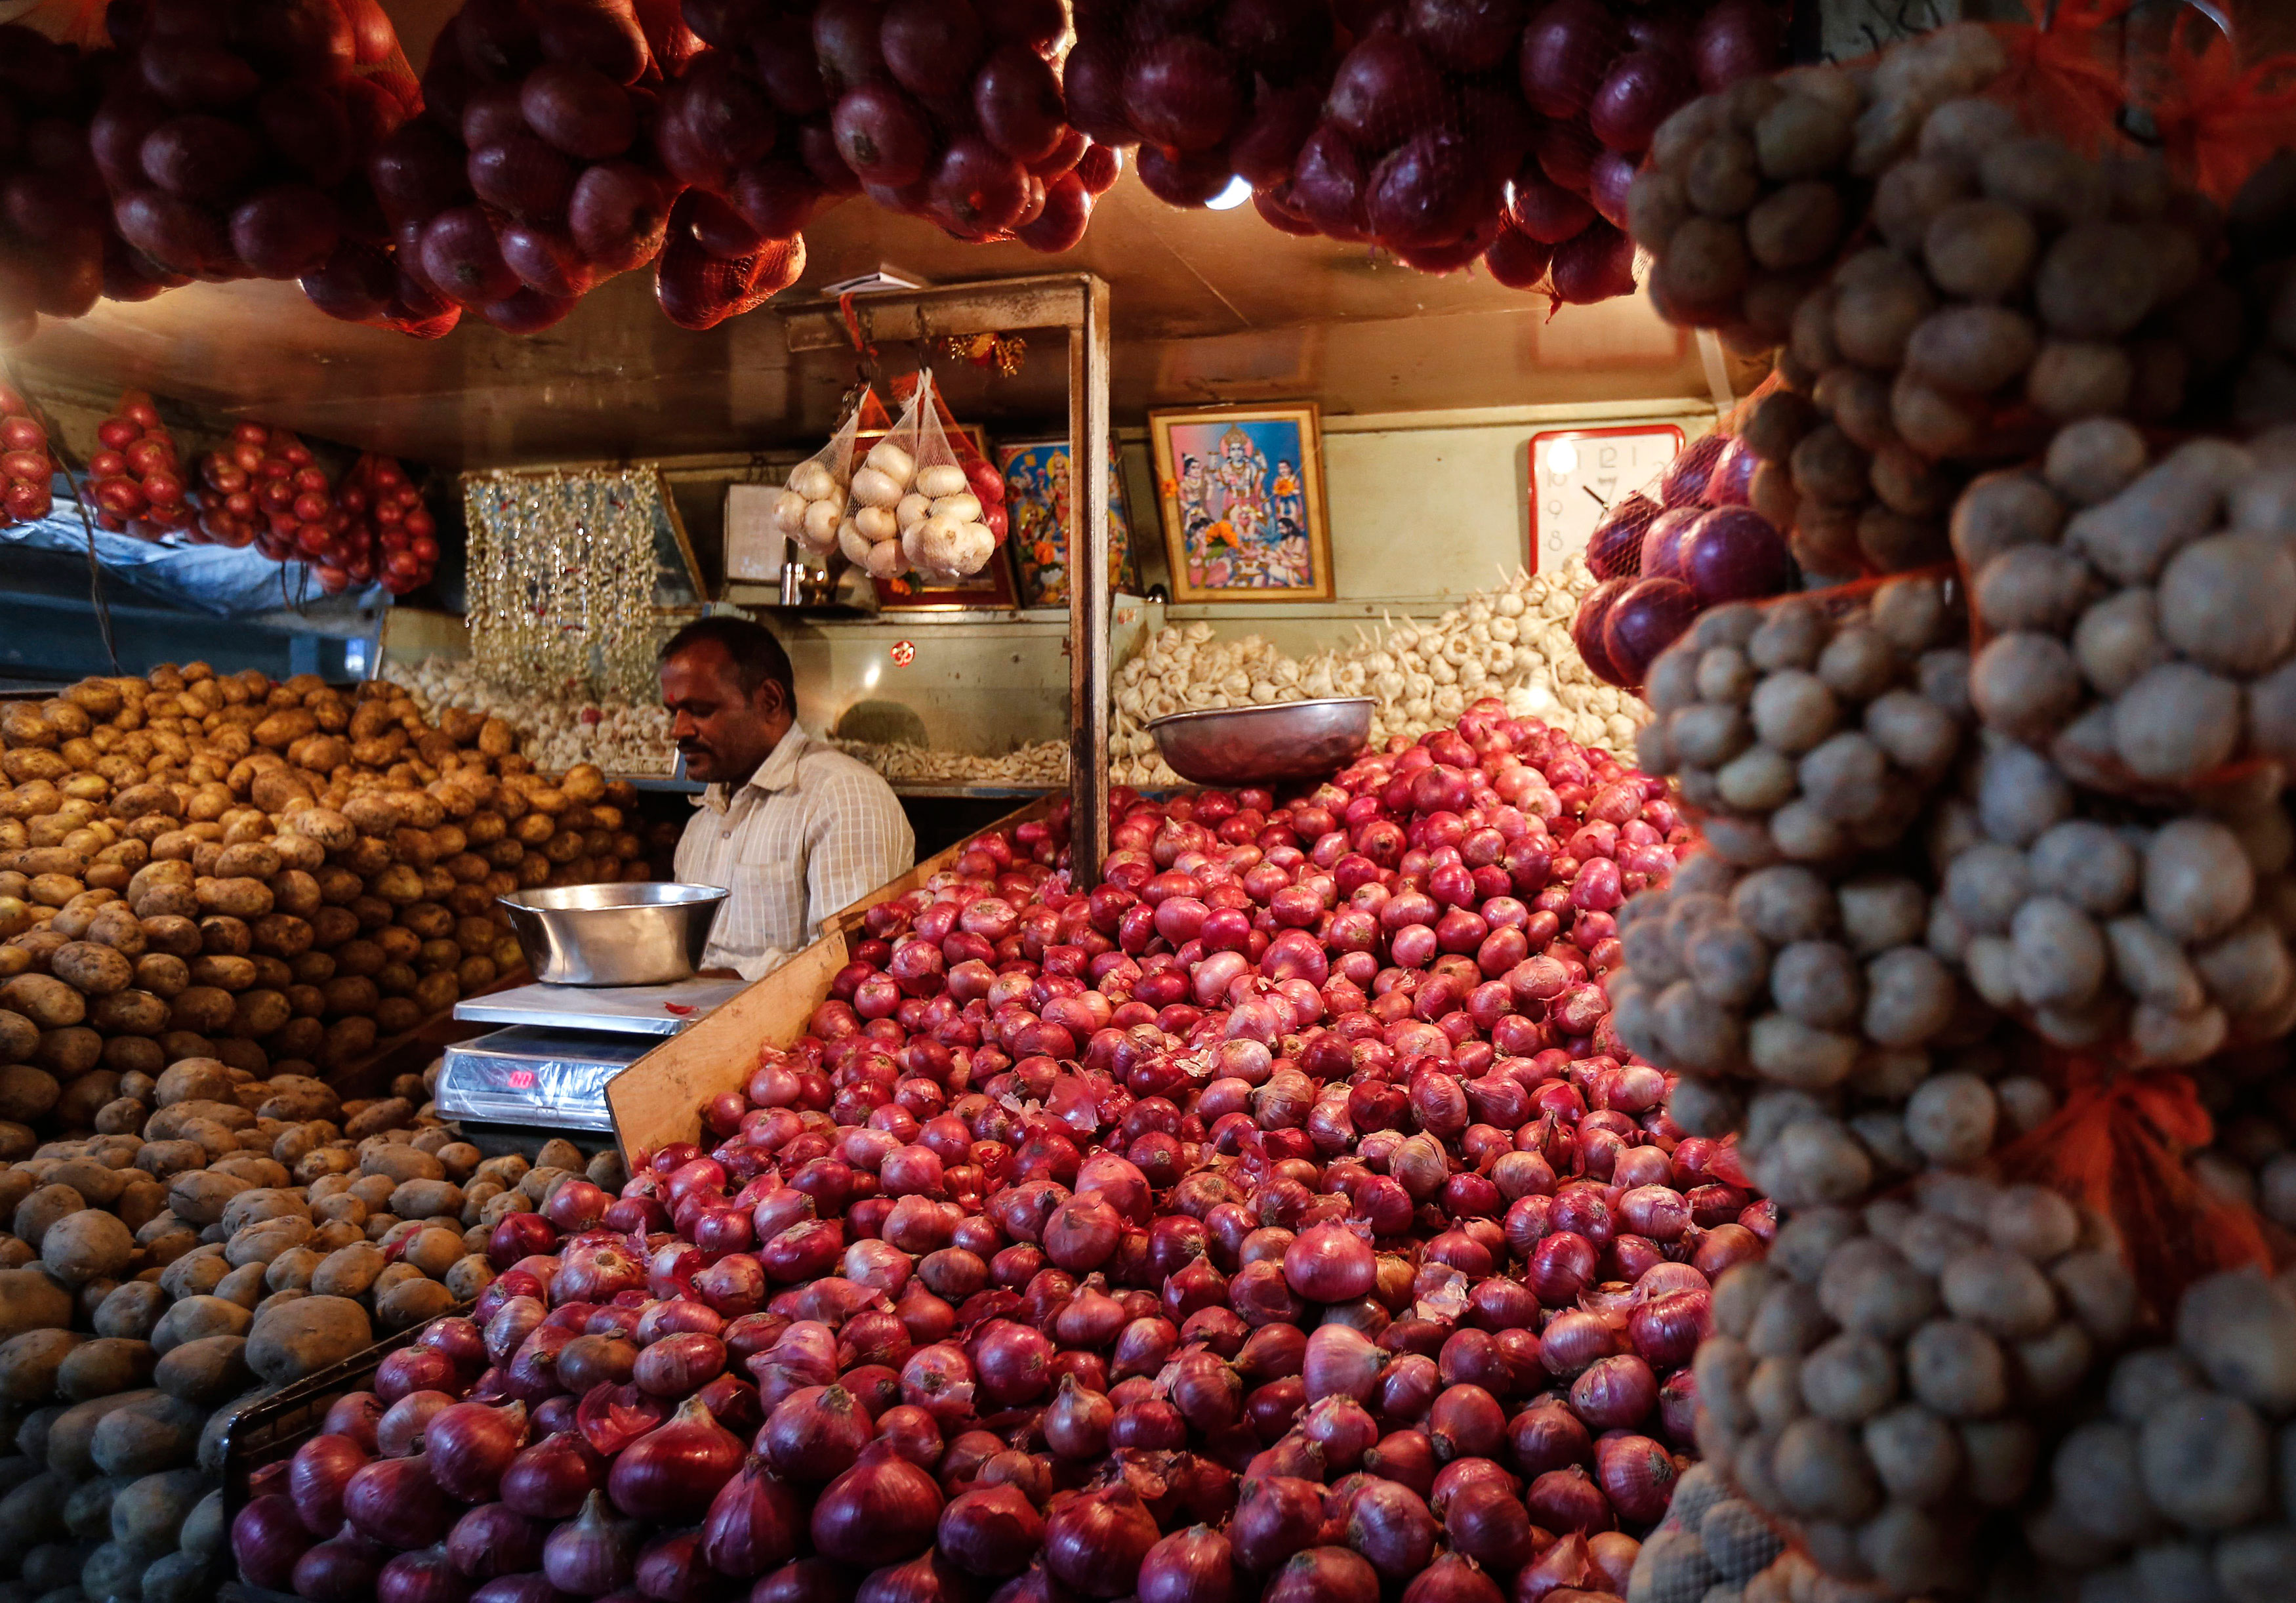 Wholesale inflation inches up, but hovers around 0%